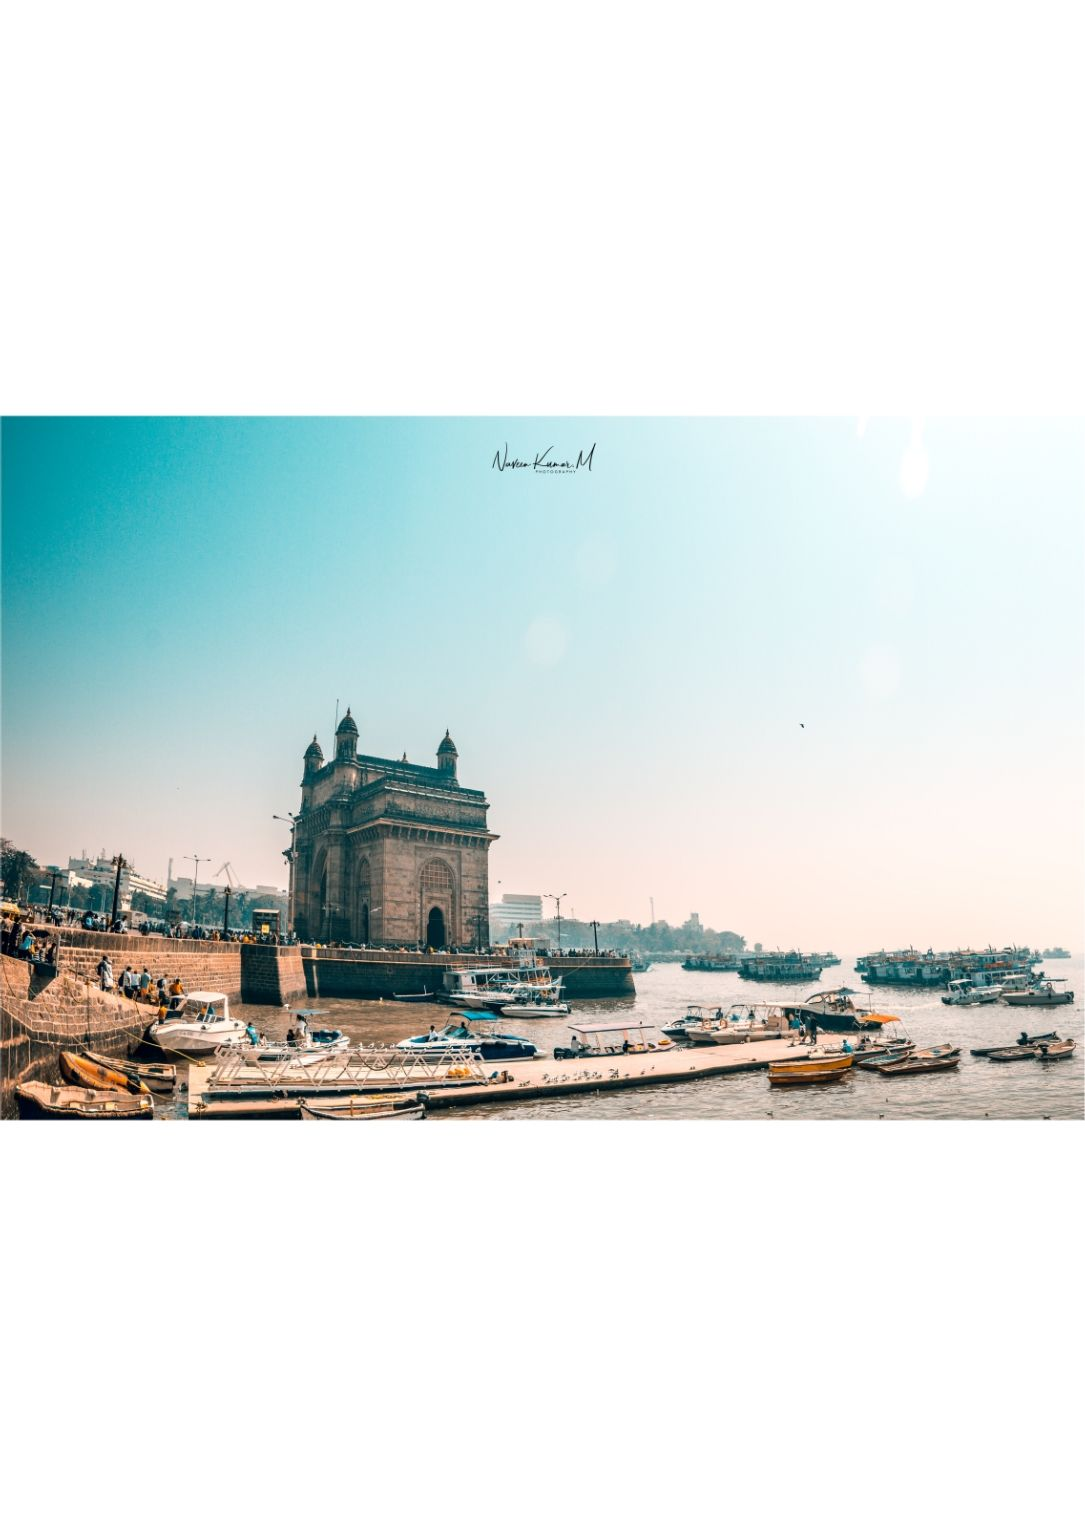 Photo of Gateway of India By Naveen kumar